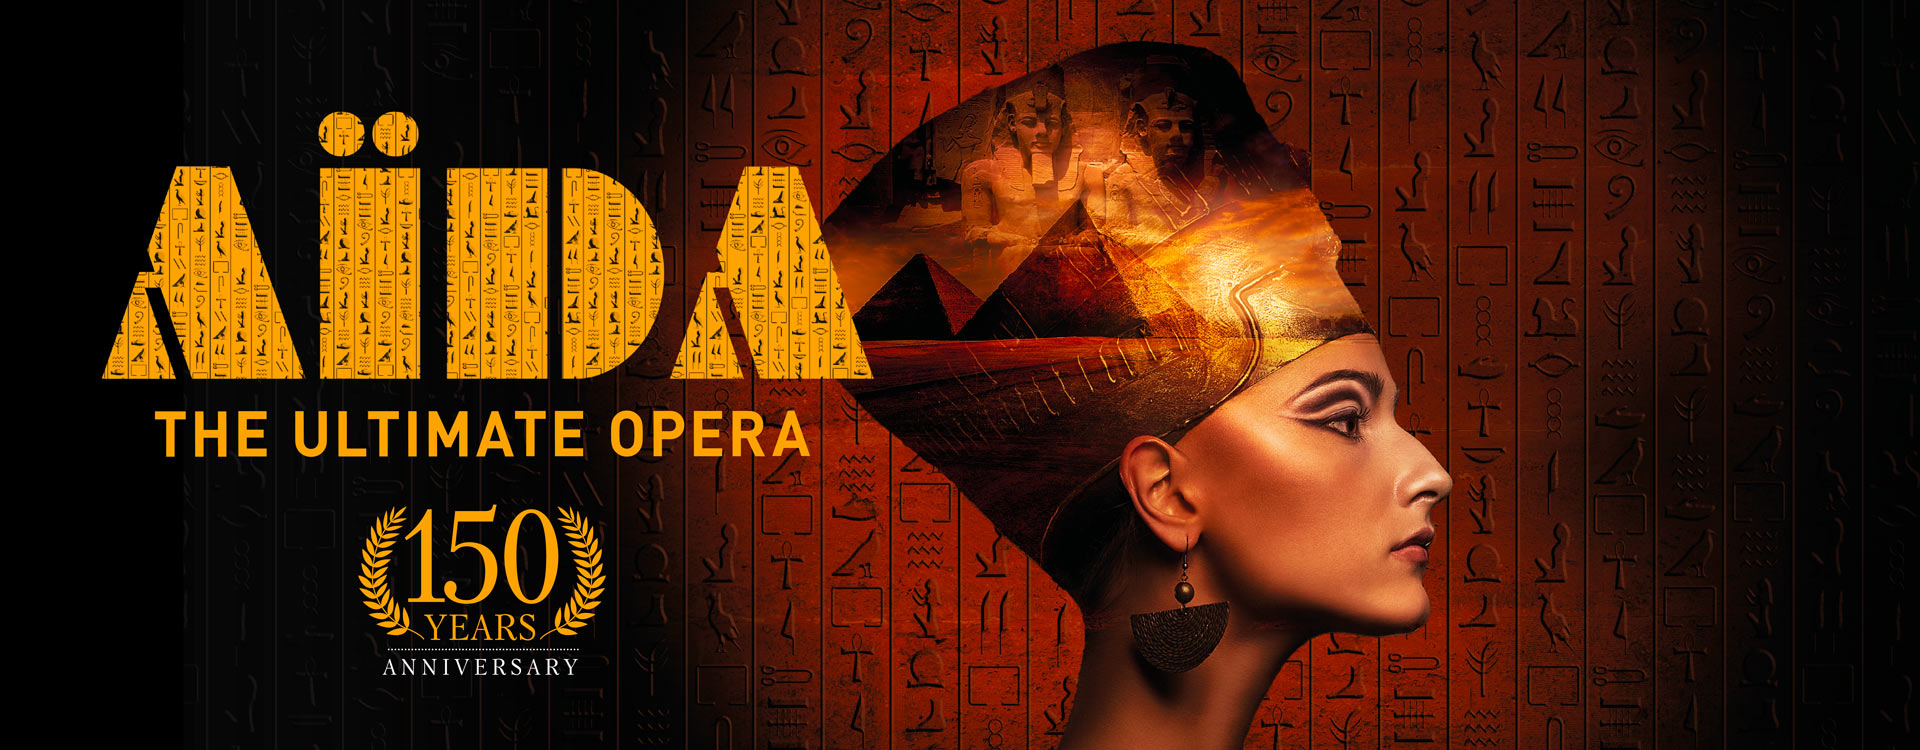 Aïda, the ultimate opera, 150th anniversary